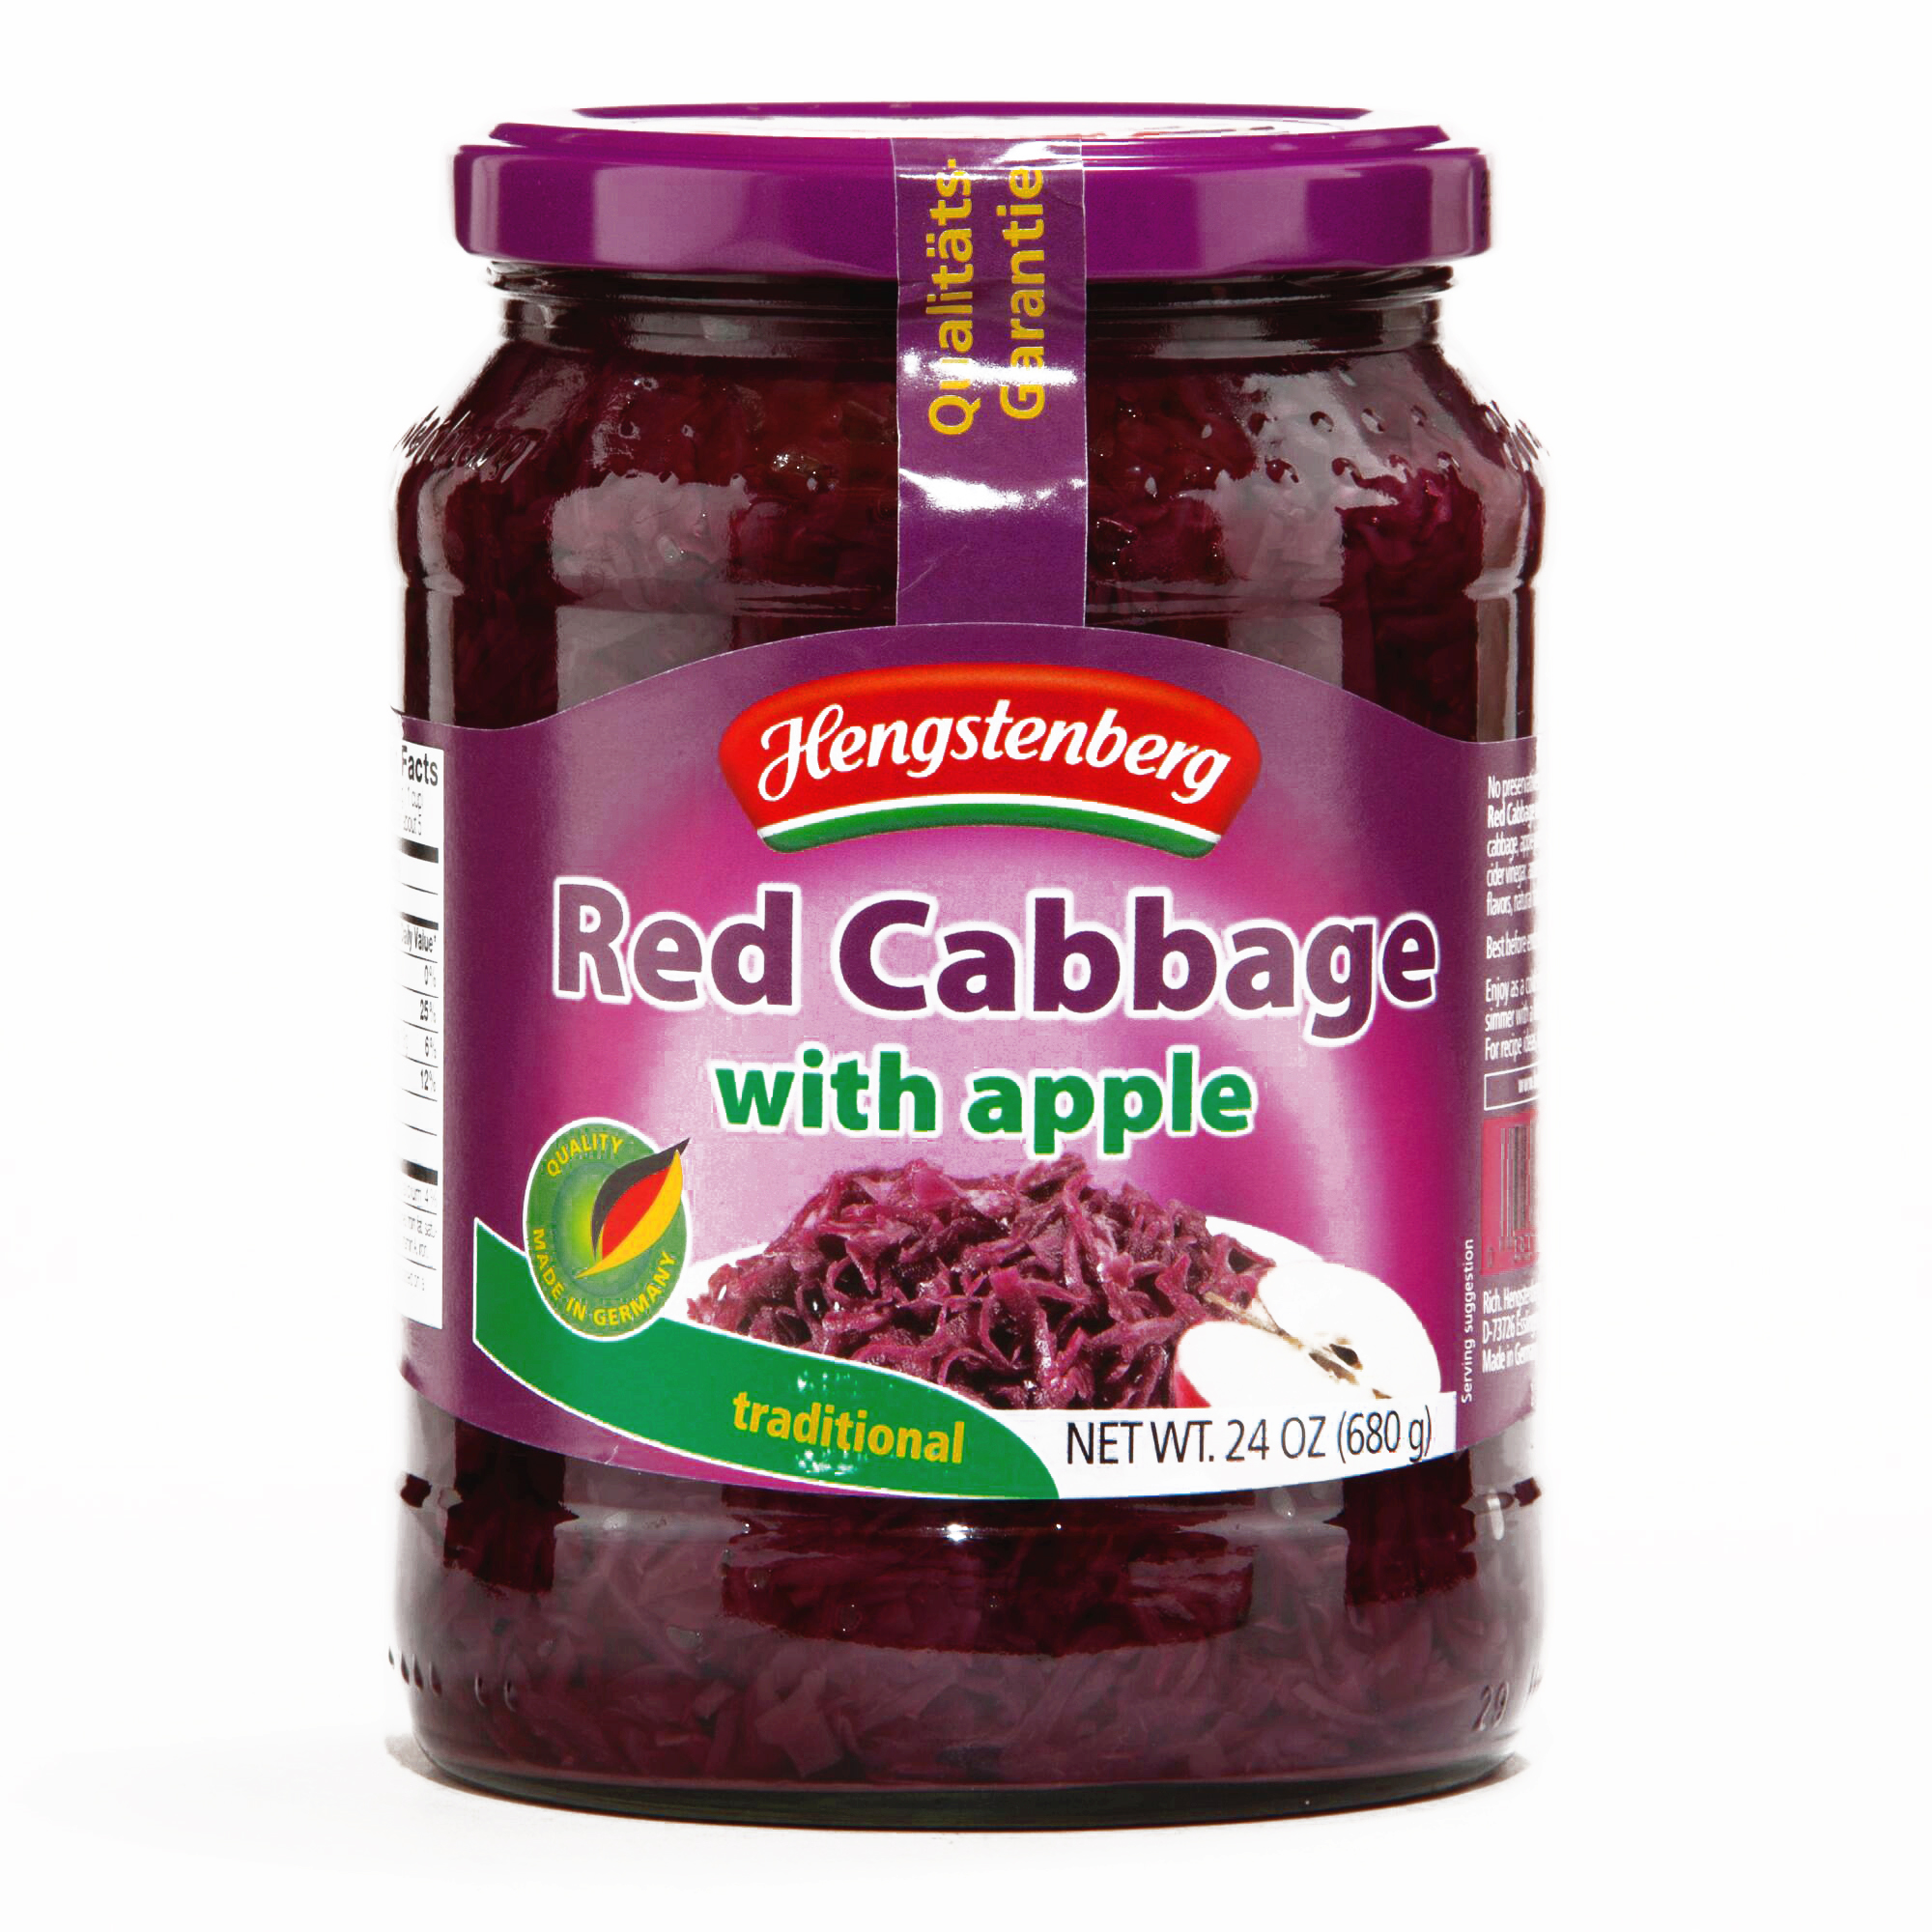 Hengstenberg Red Cabbage with Apples 24 oz each (6 Items Per Order, not per case)